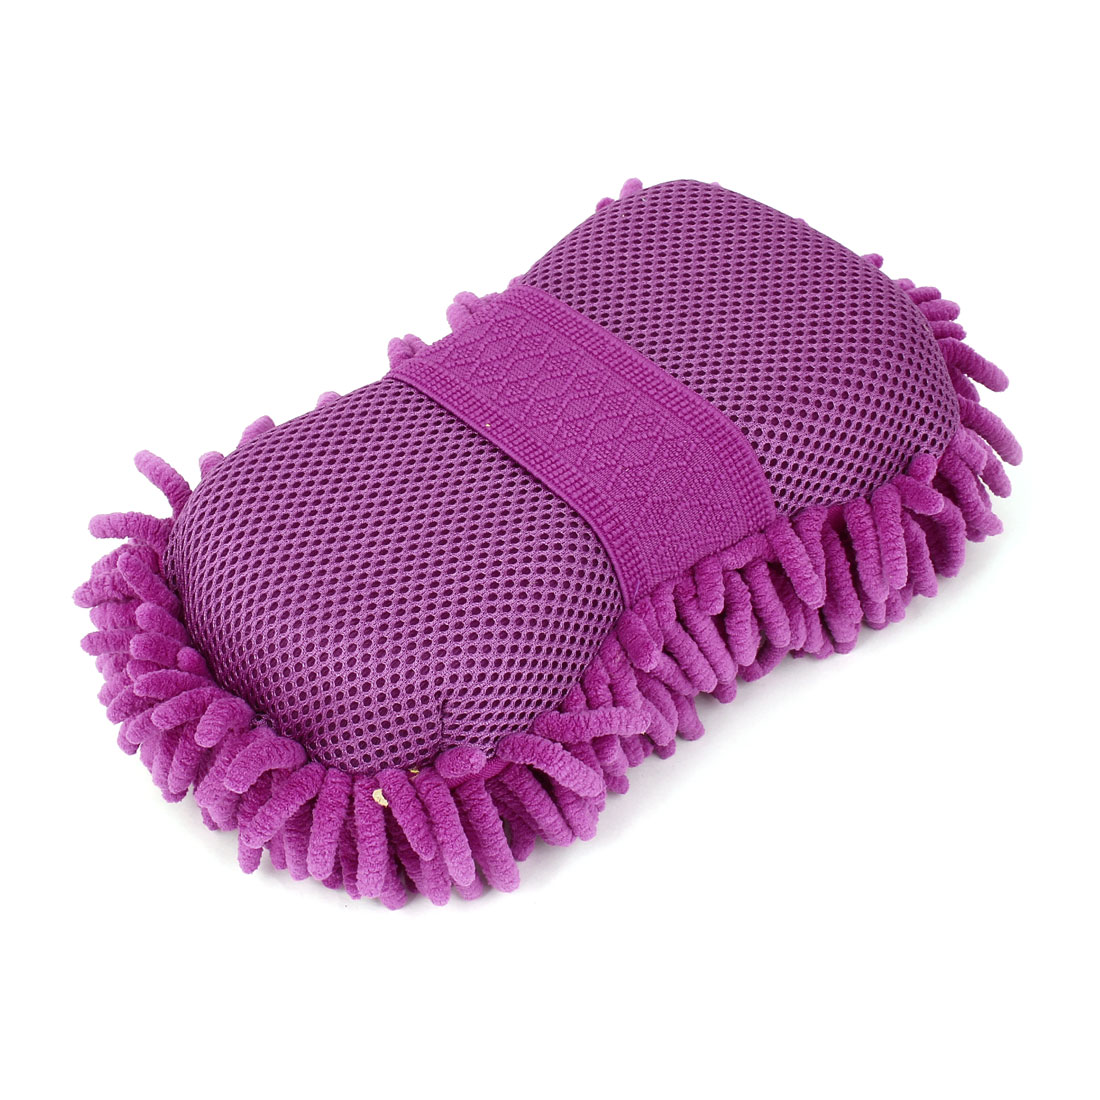 Microfiber Chenille Cleaning Tool Car Care Washing Brush Sponge Pad Purple